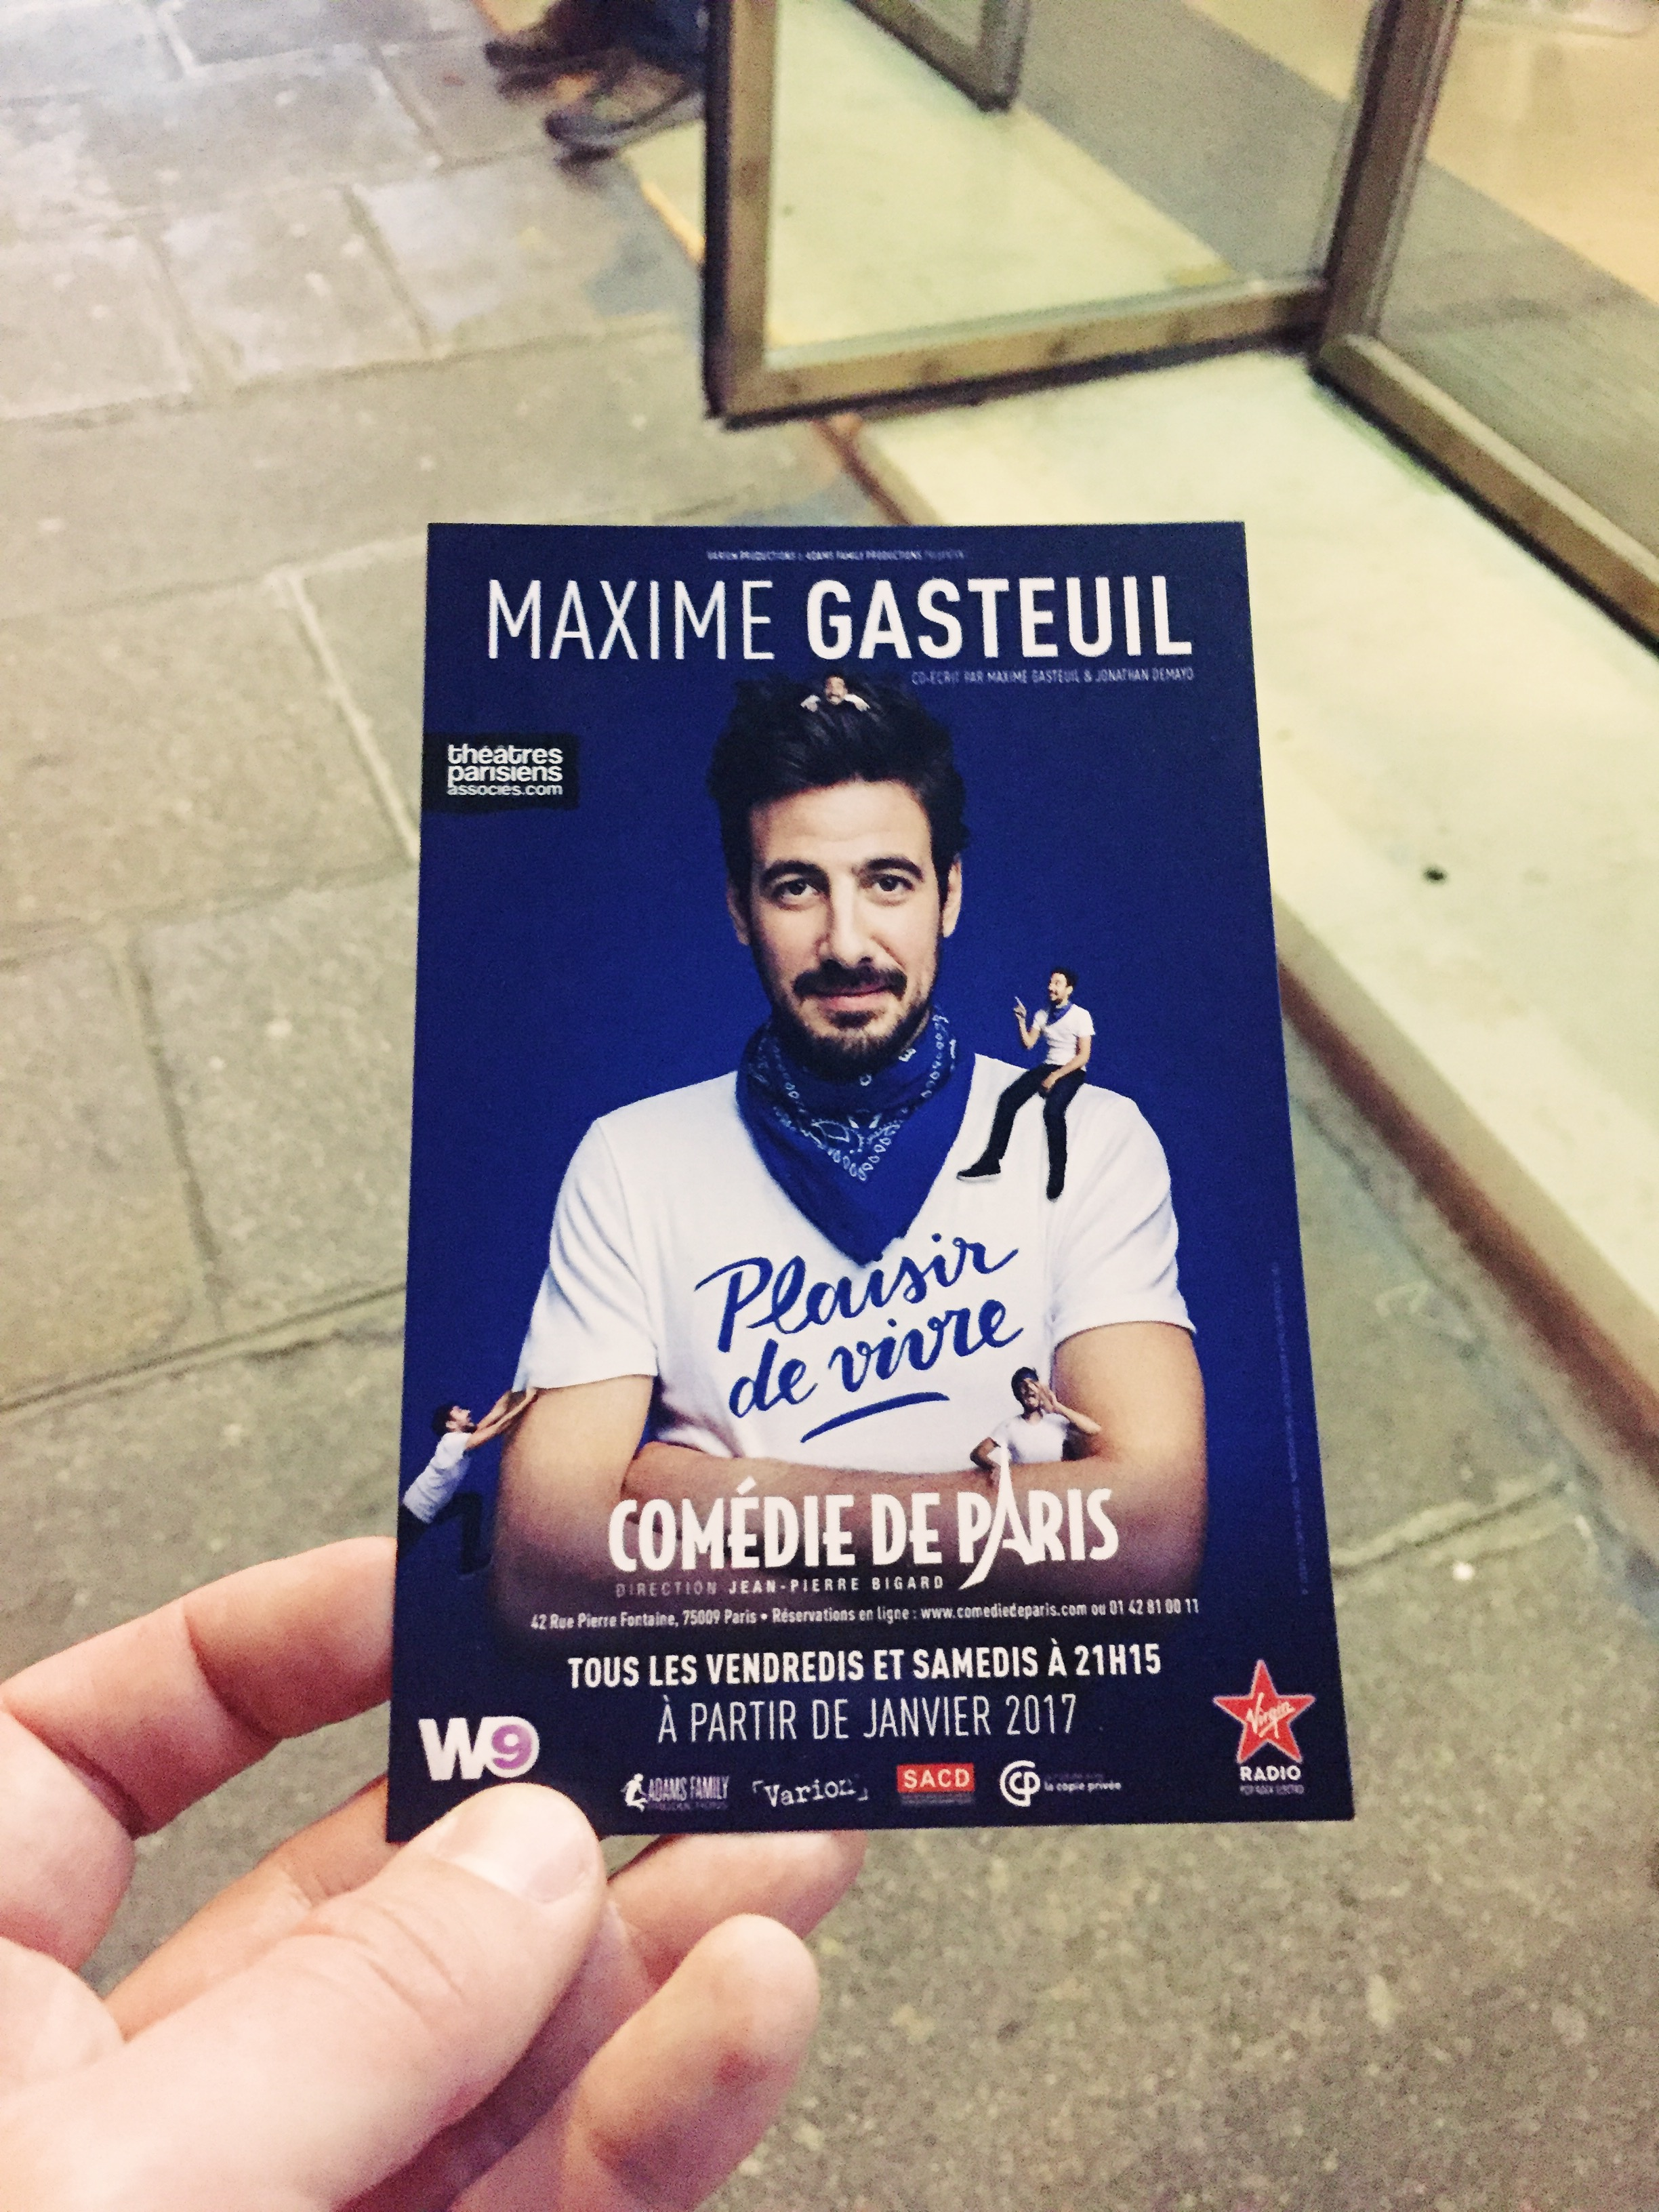 Maxime-Gasteuil-affiche-spectacle-Plaisir-de-vivre-Comédie-de-Paris-photo-flyer-usofparis-blog